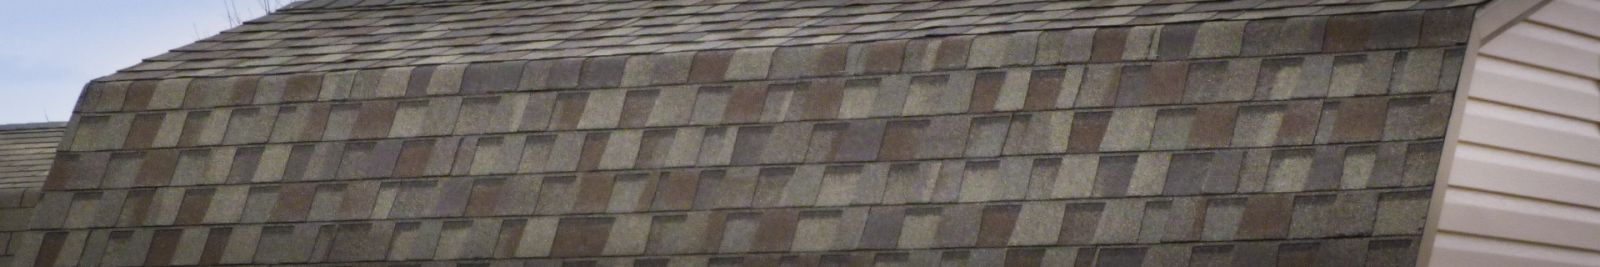 Dimensional shingle roofing for custom sheds in KY and TN